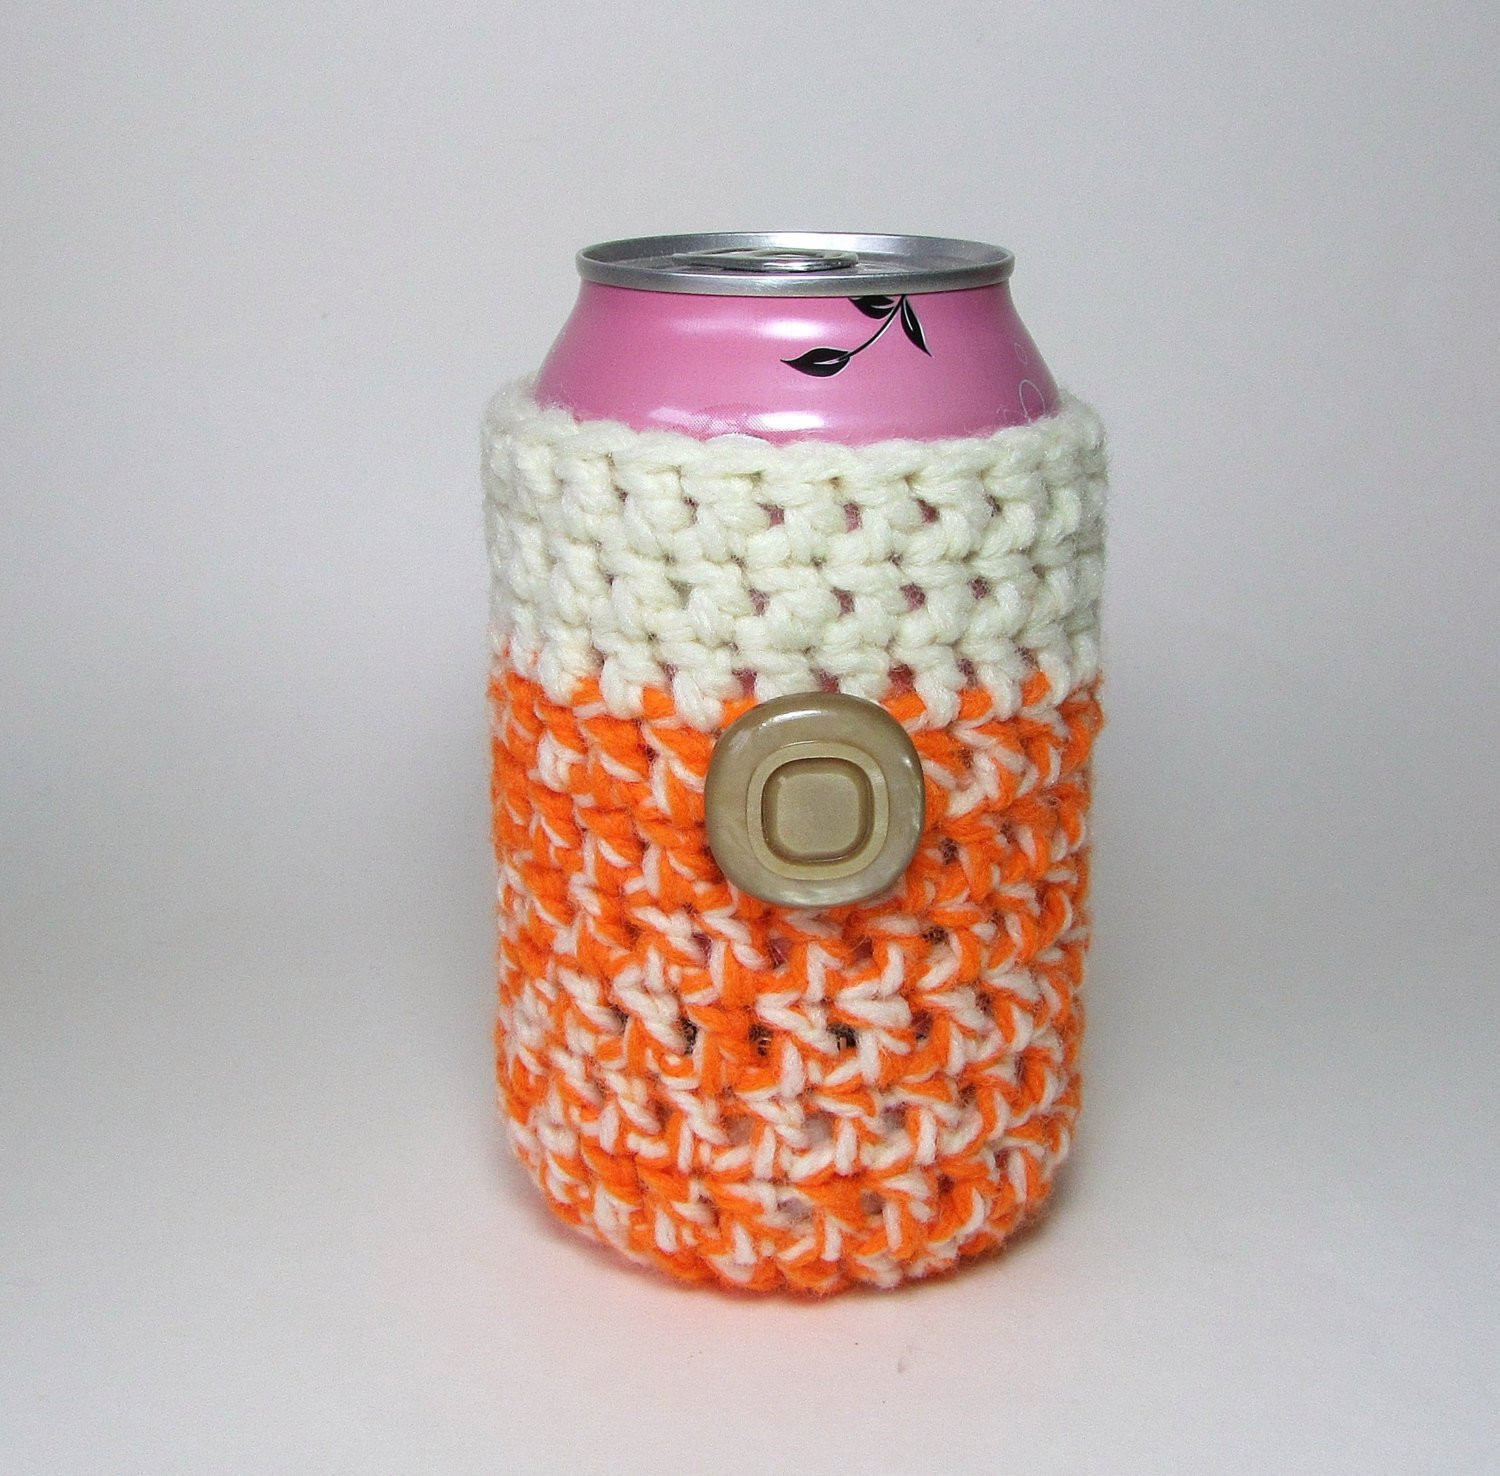 Unique Creamsicle Beer Bottle Koozie Can Cozy Beverage Holder by Can Cozy Of Wonderful 48 Pictures Can Cozy